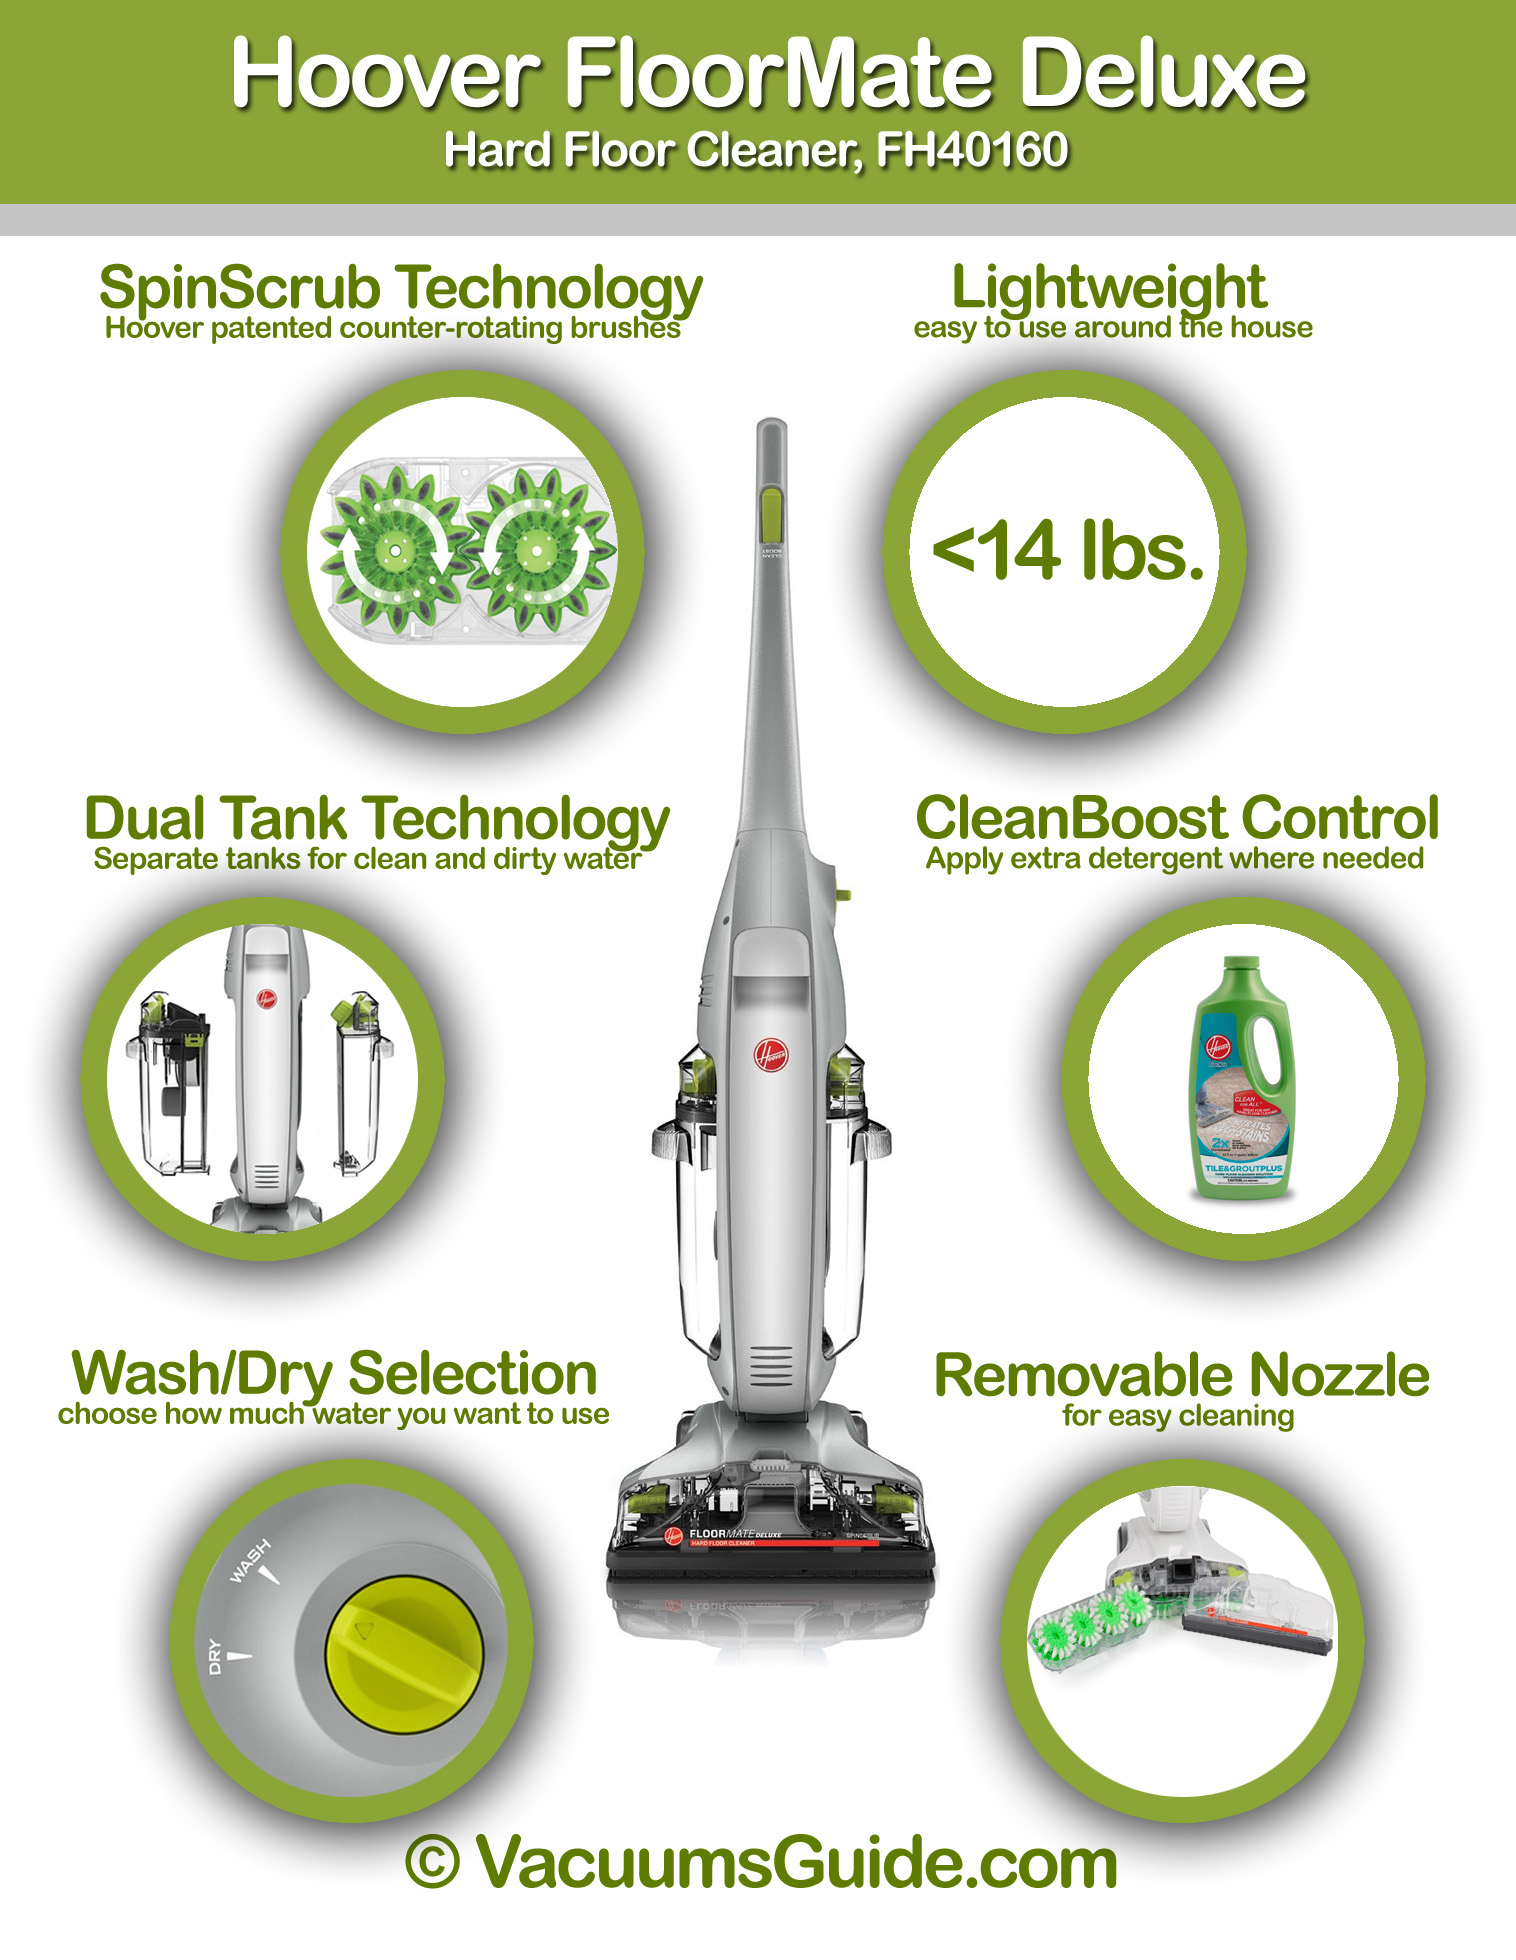 Hoover floormate deluxe the review of a hard floor cleaner dailygadgetfo Choice Image